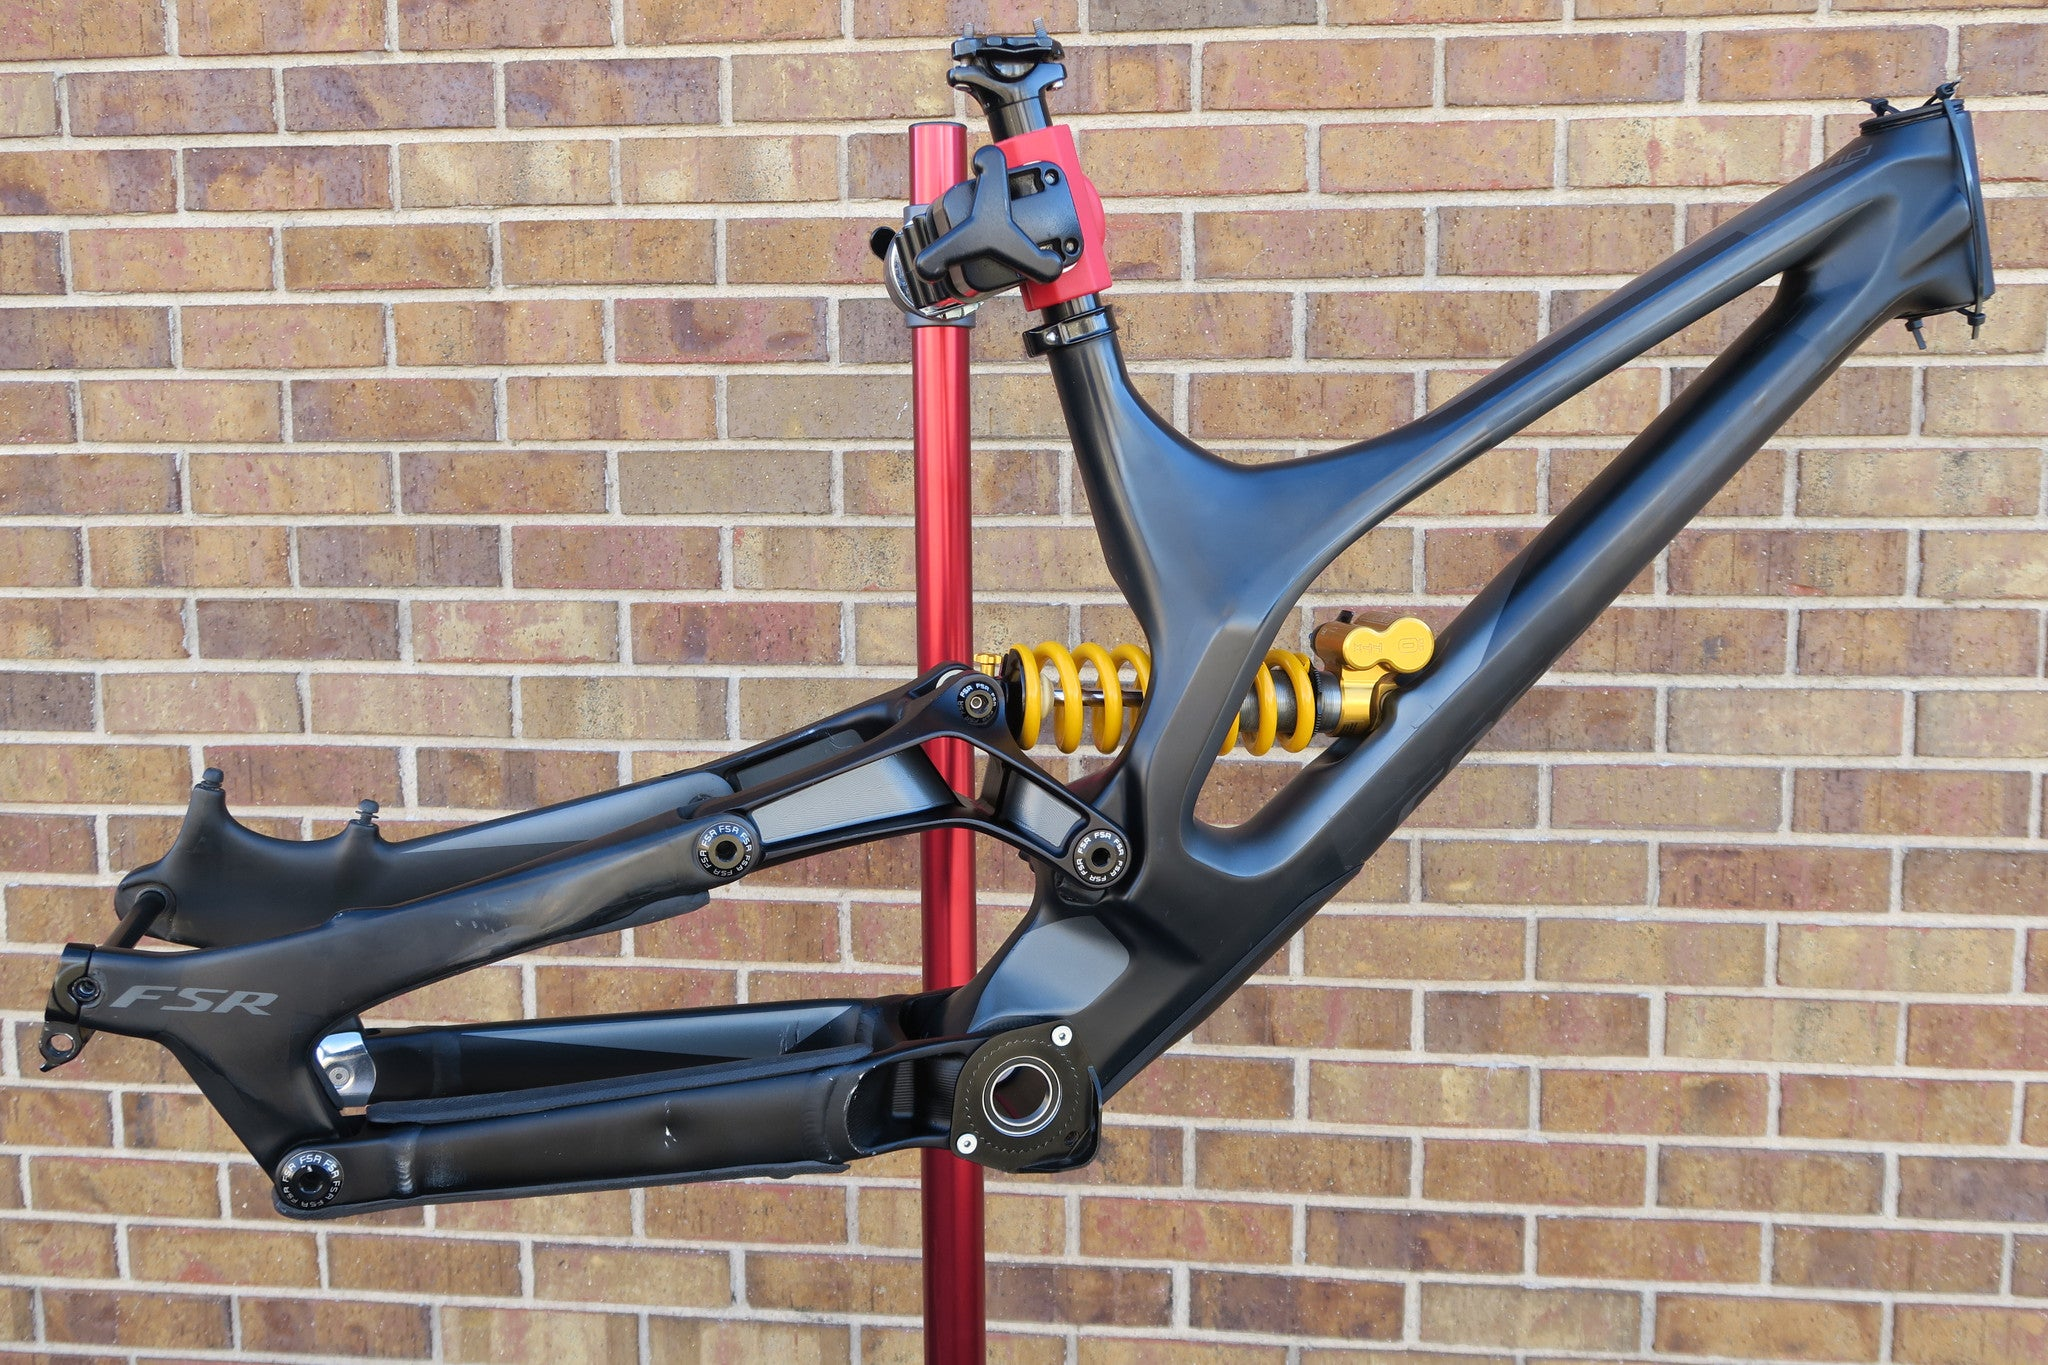 2016 SPECIALIZED DEMO 8 1 CARBON FRAME